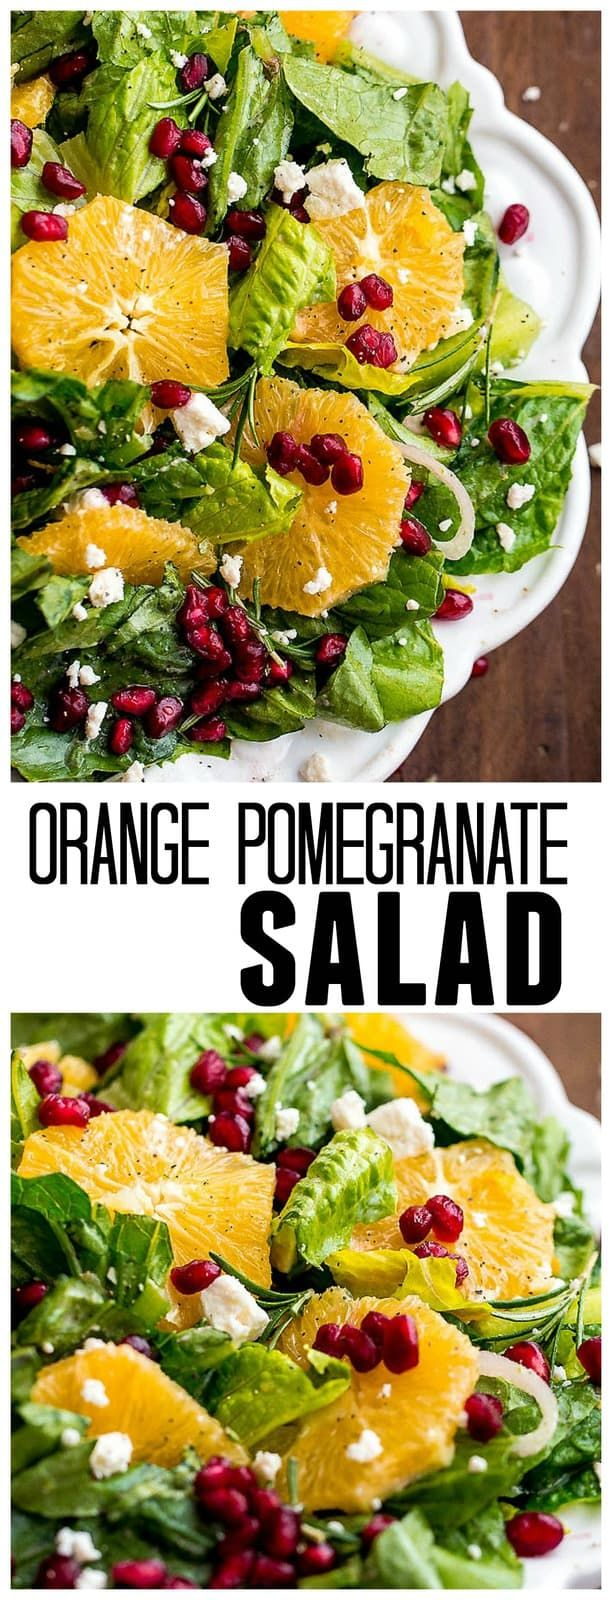 This Orange Pomegranate Salad Is Incredible With Fresh Oranges And Pomegranates Topped With An Amazing Zesty Pomegranate Salad Delicious Salads Healthy Recipes